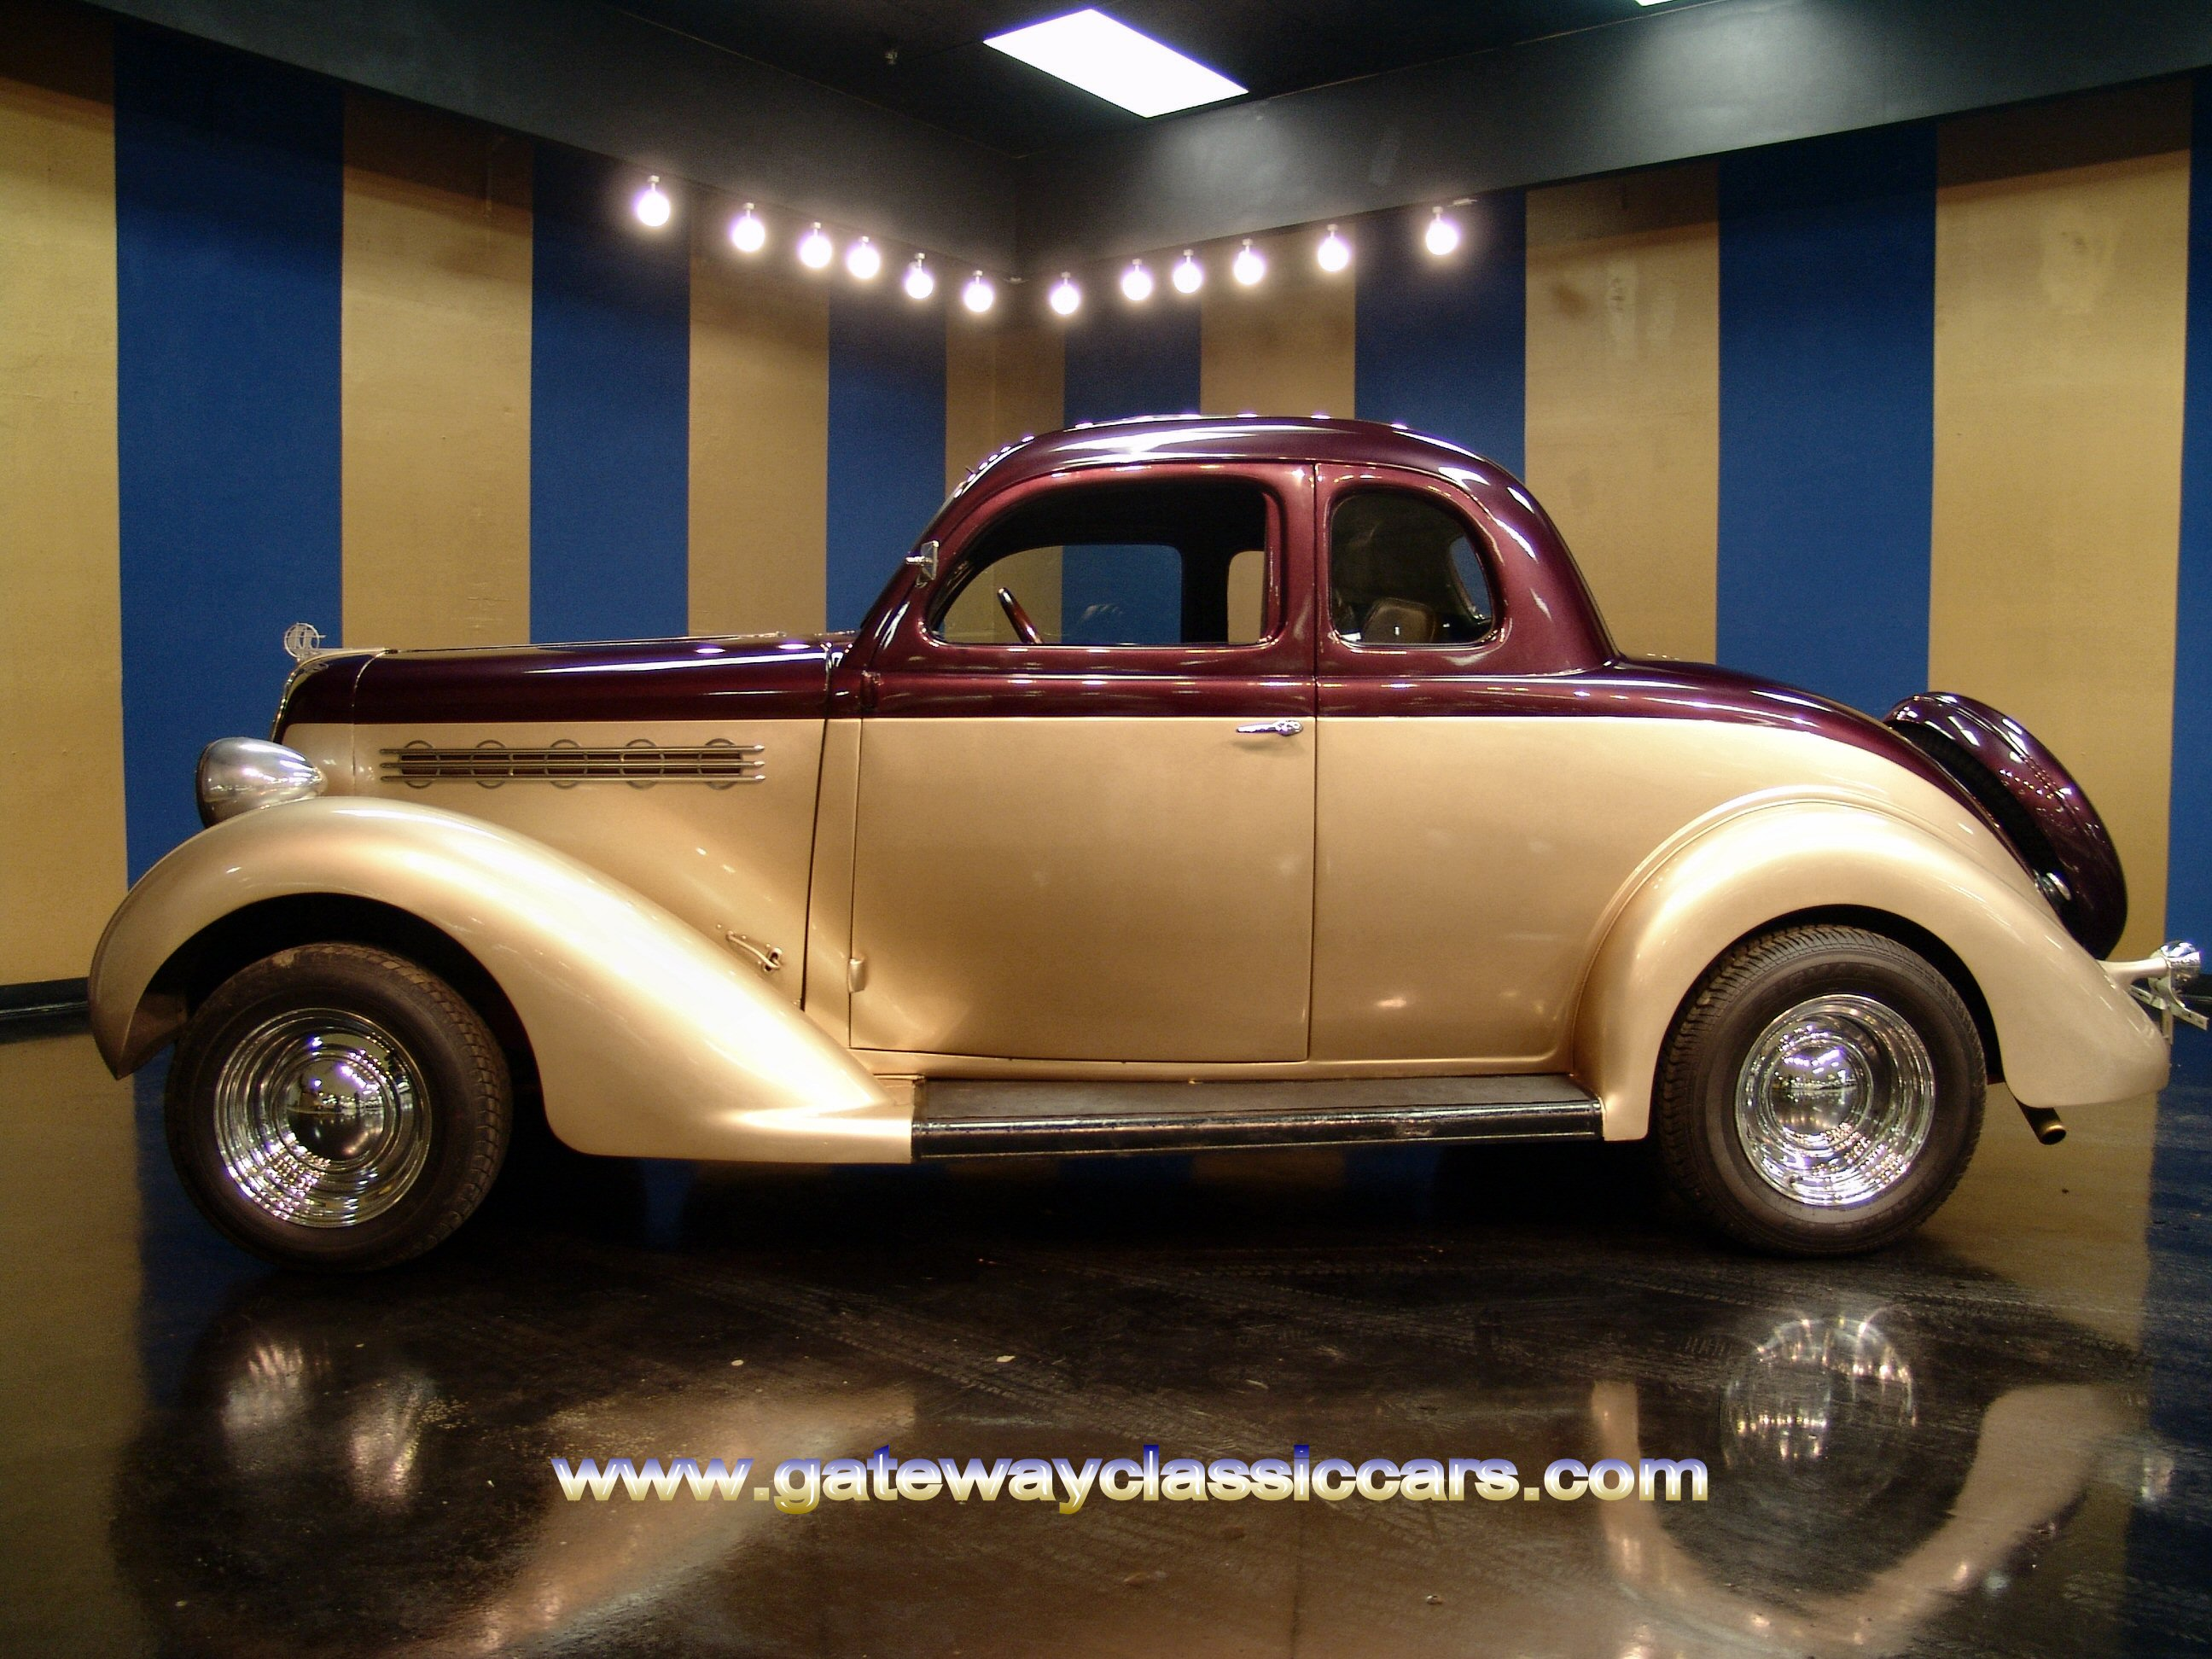 Classic Cars Denver >> 1935 Plymouth 5 Window Coupe For Sale | Gateway Classic Cars | 2807